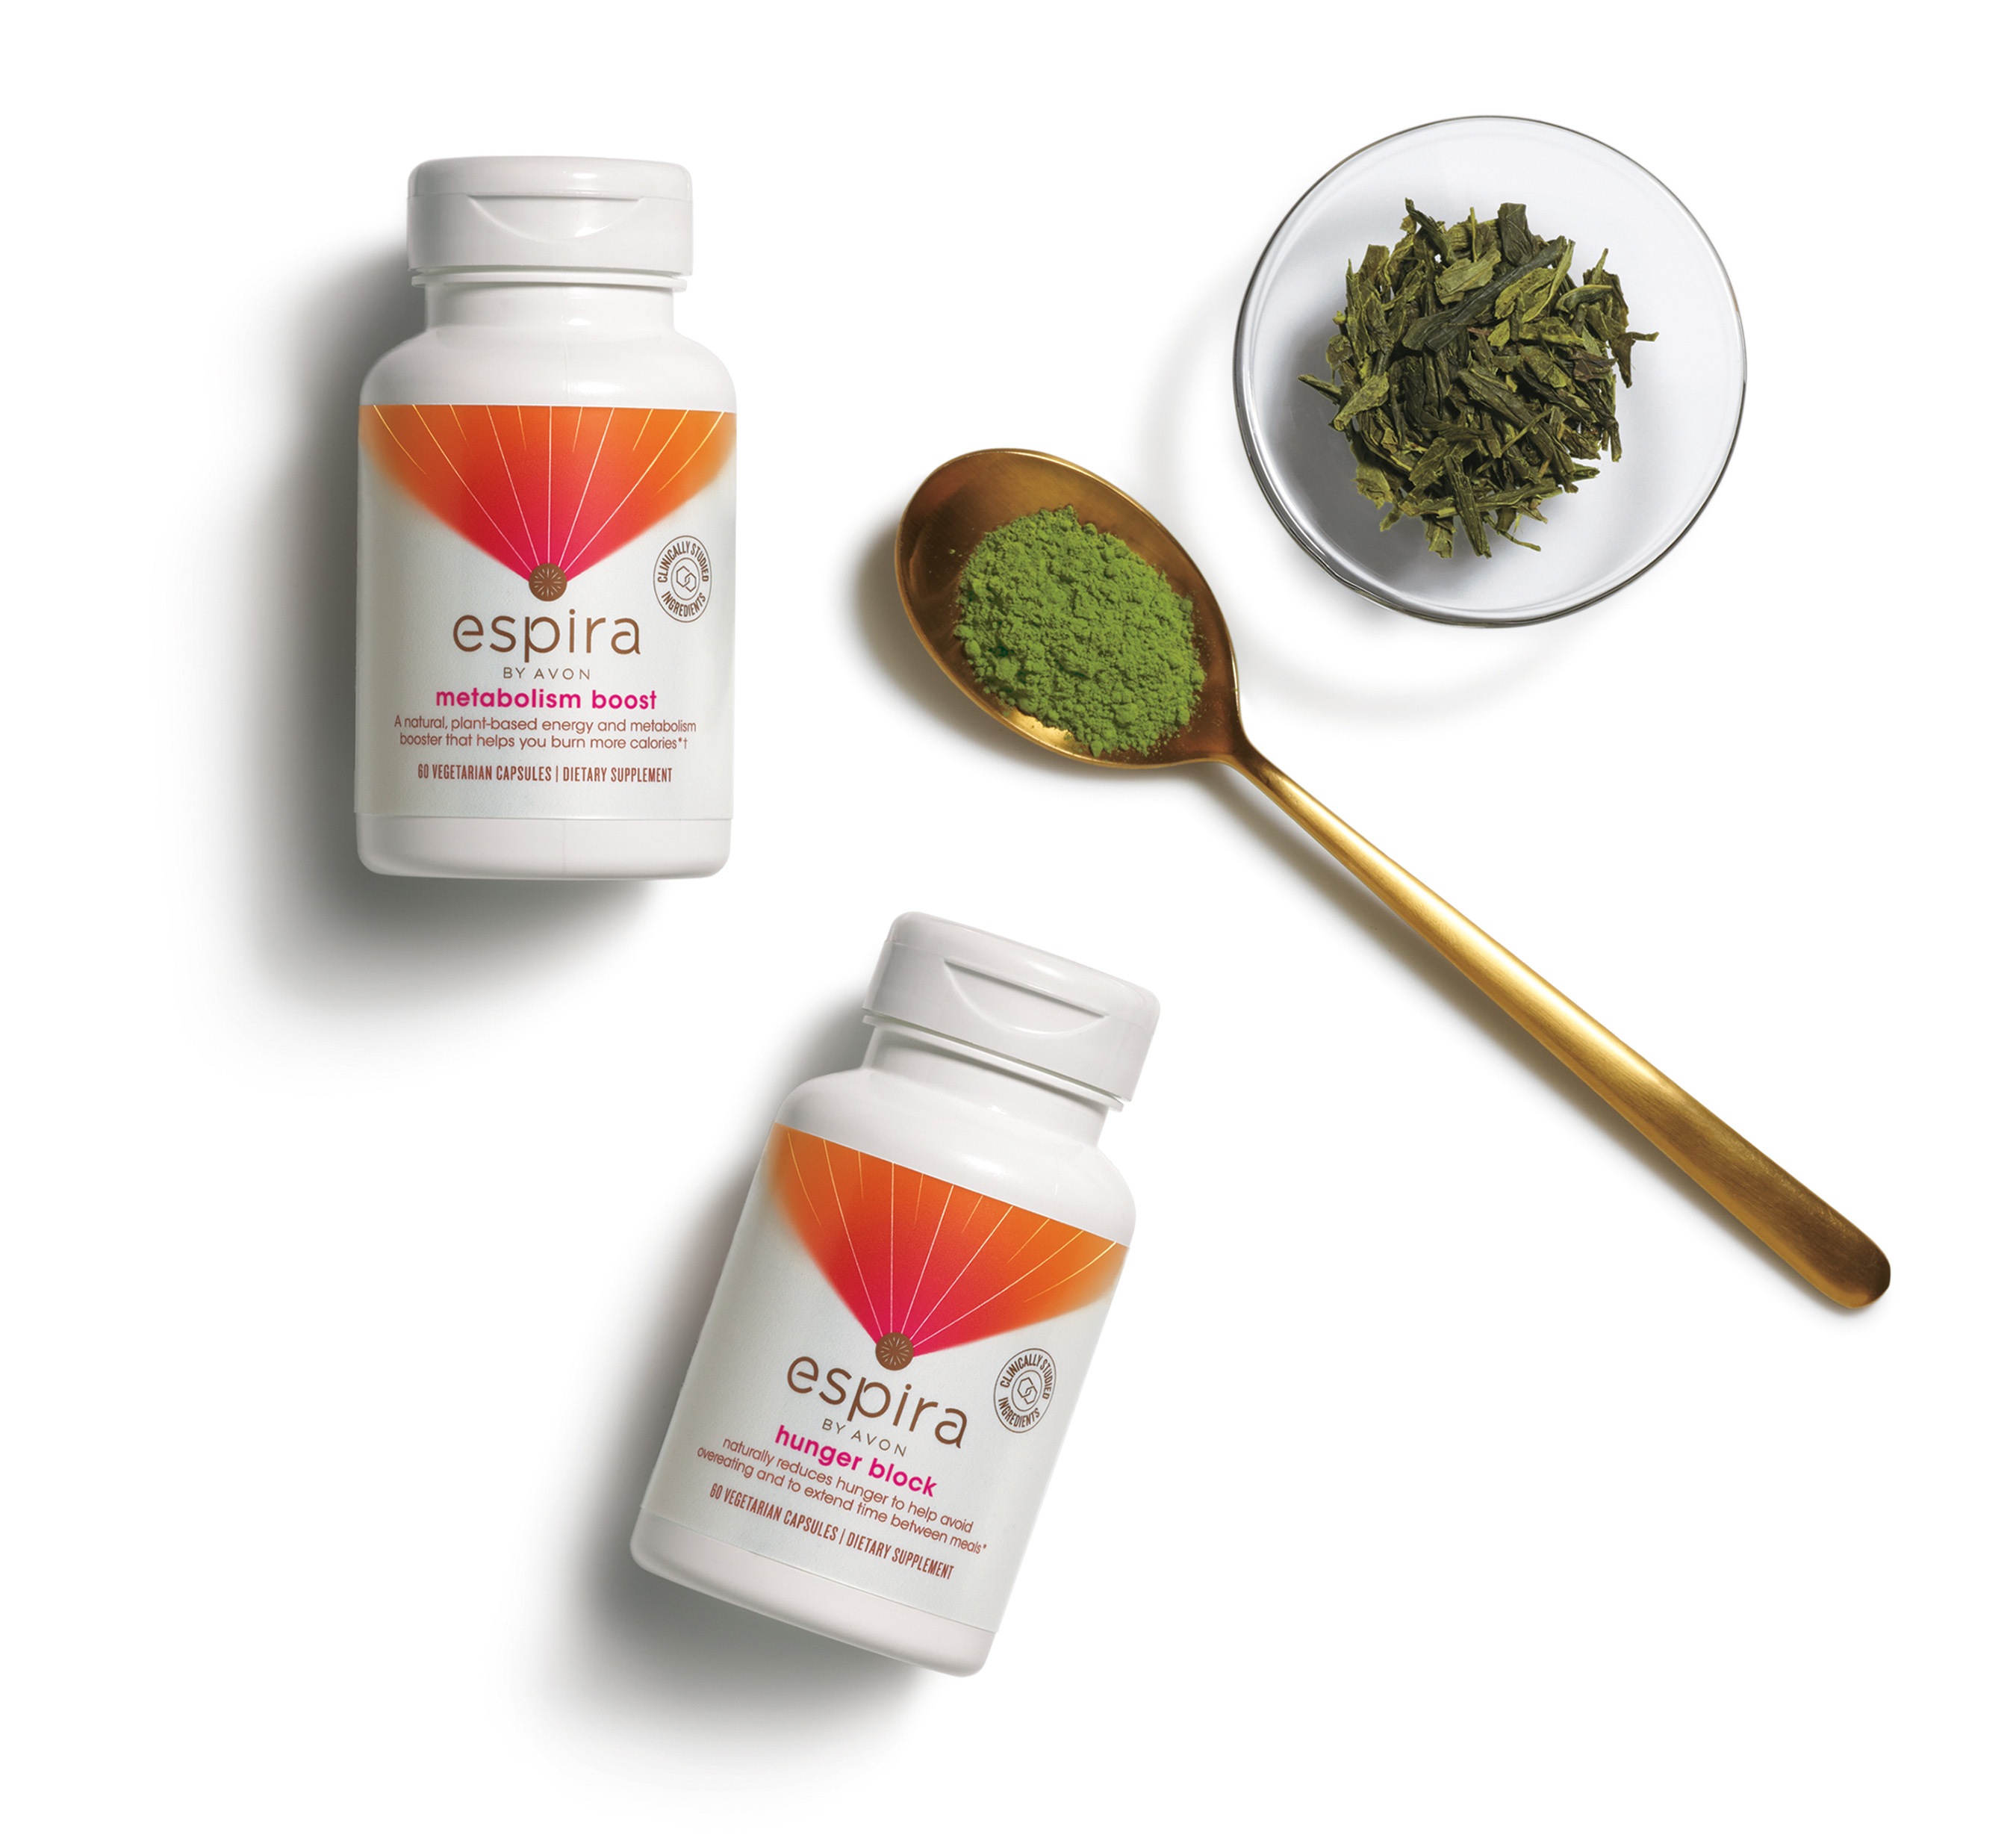 Avon launches espira a new brand of health and wellness